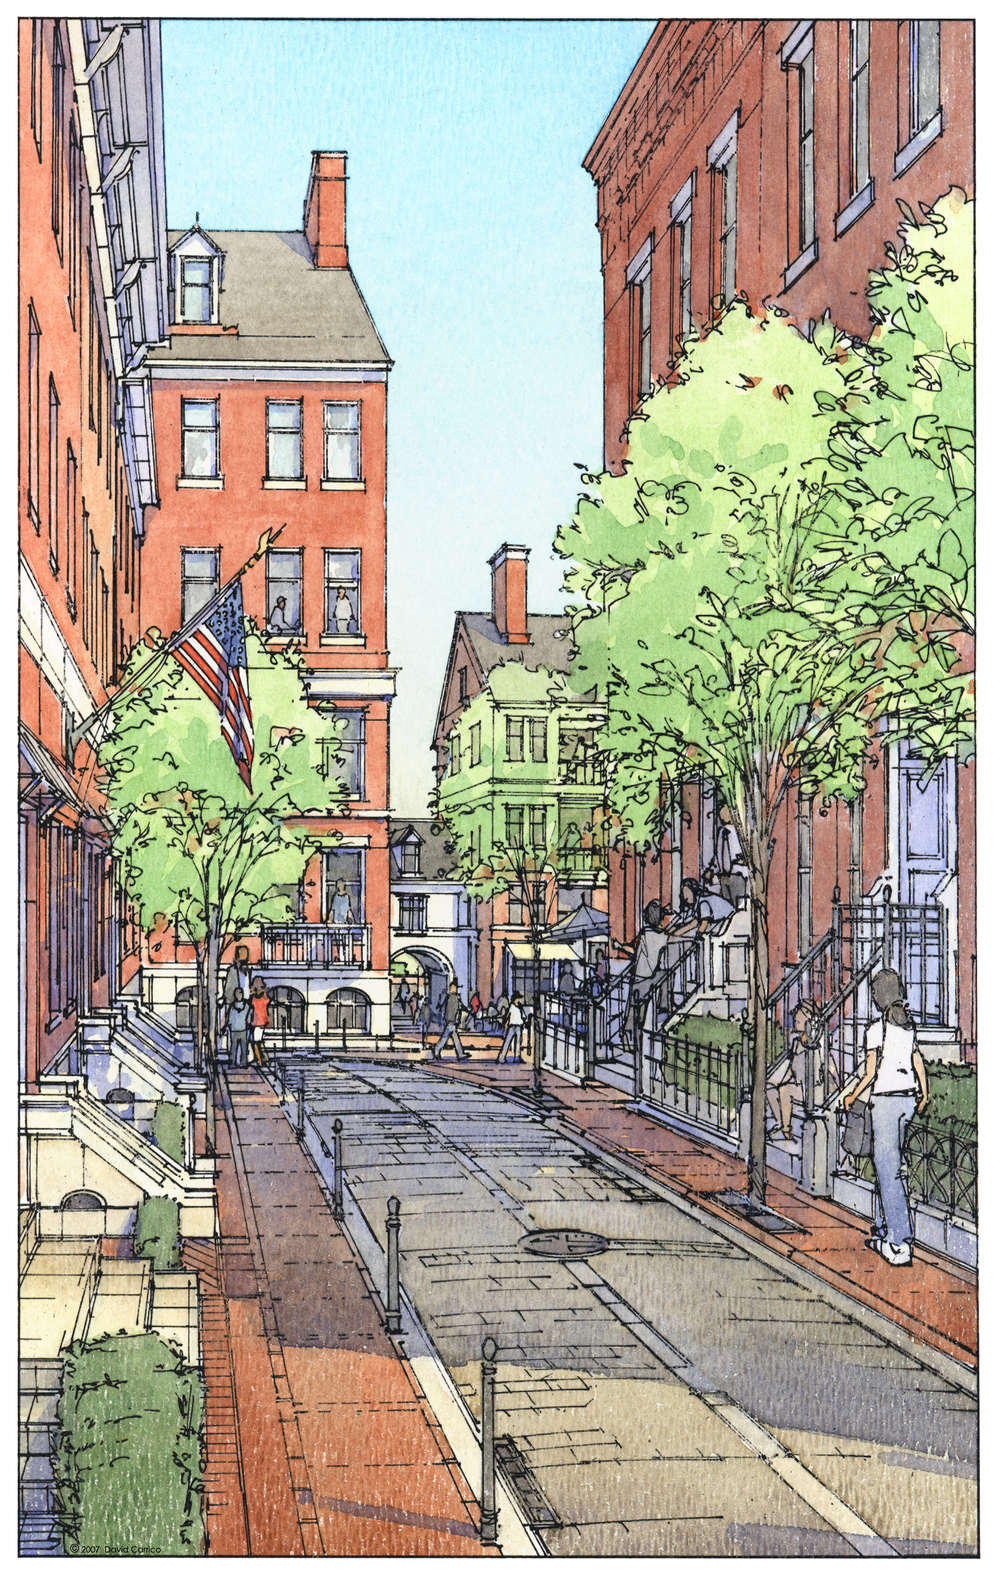 Portland.ME.Robert_Orr_&_Assoc.Cotton_Street.Mixed-Use_Development.Skinny_Street.jpg